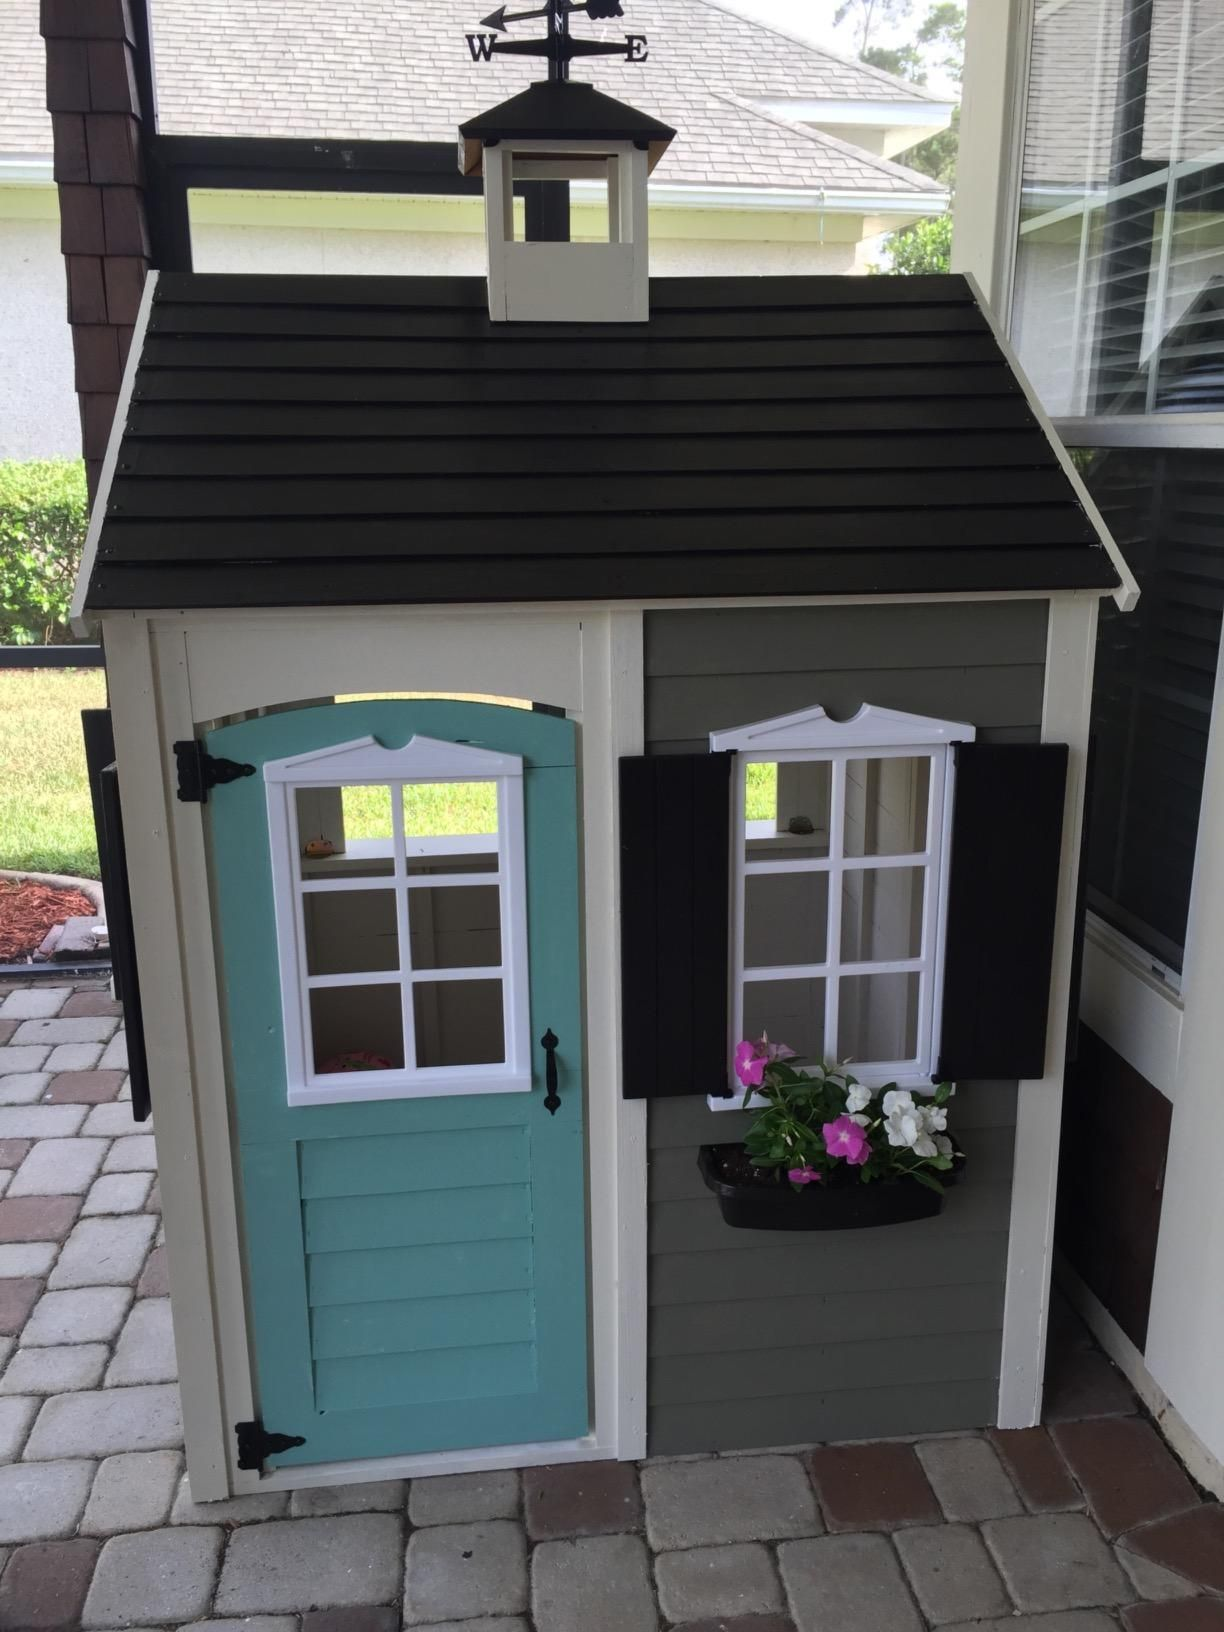 Amazon.com: Customer Reviews: Bayberry Playhouse by Big ...